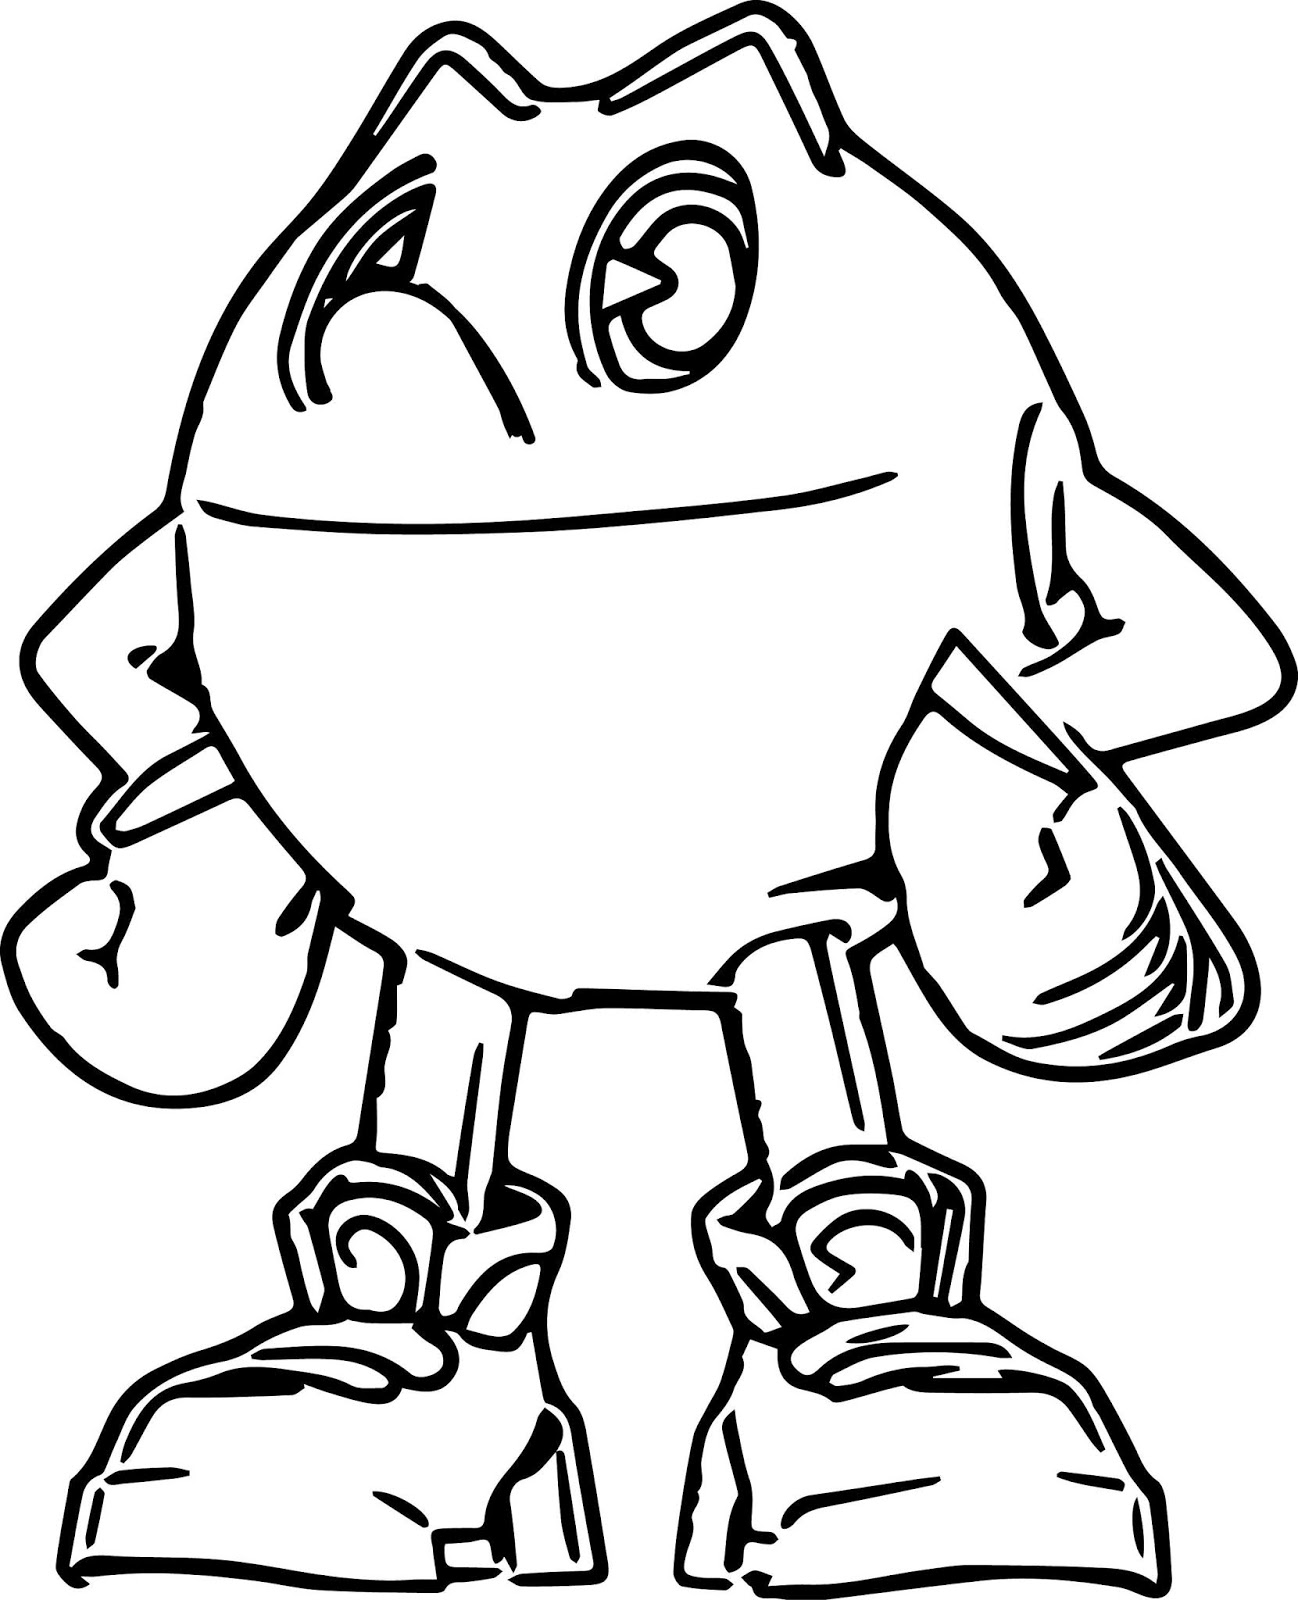 Cool Pacman Coloring Page - Free Printable Coloring Pages for Kids